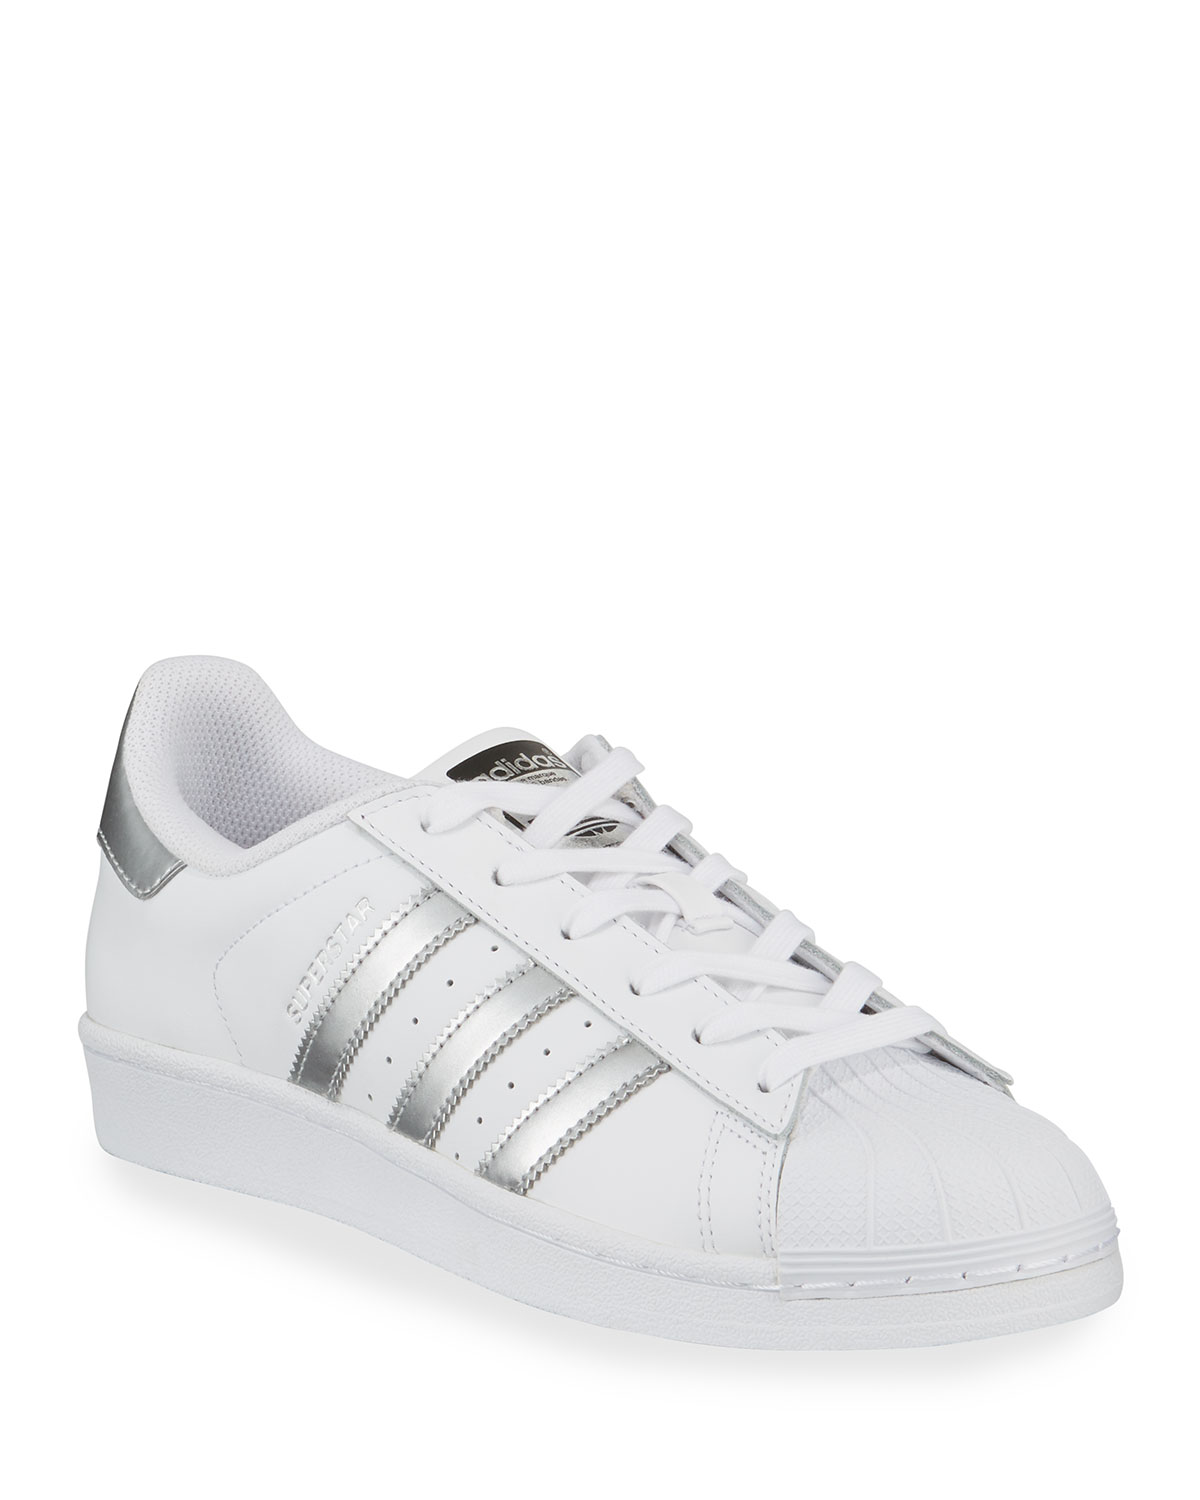 new concept 4acb1 cbcf8 Adidas Superstar Original Fashion Sneakers, White Silver